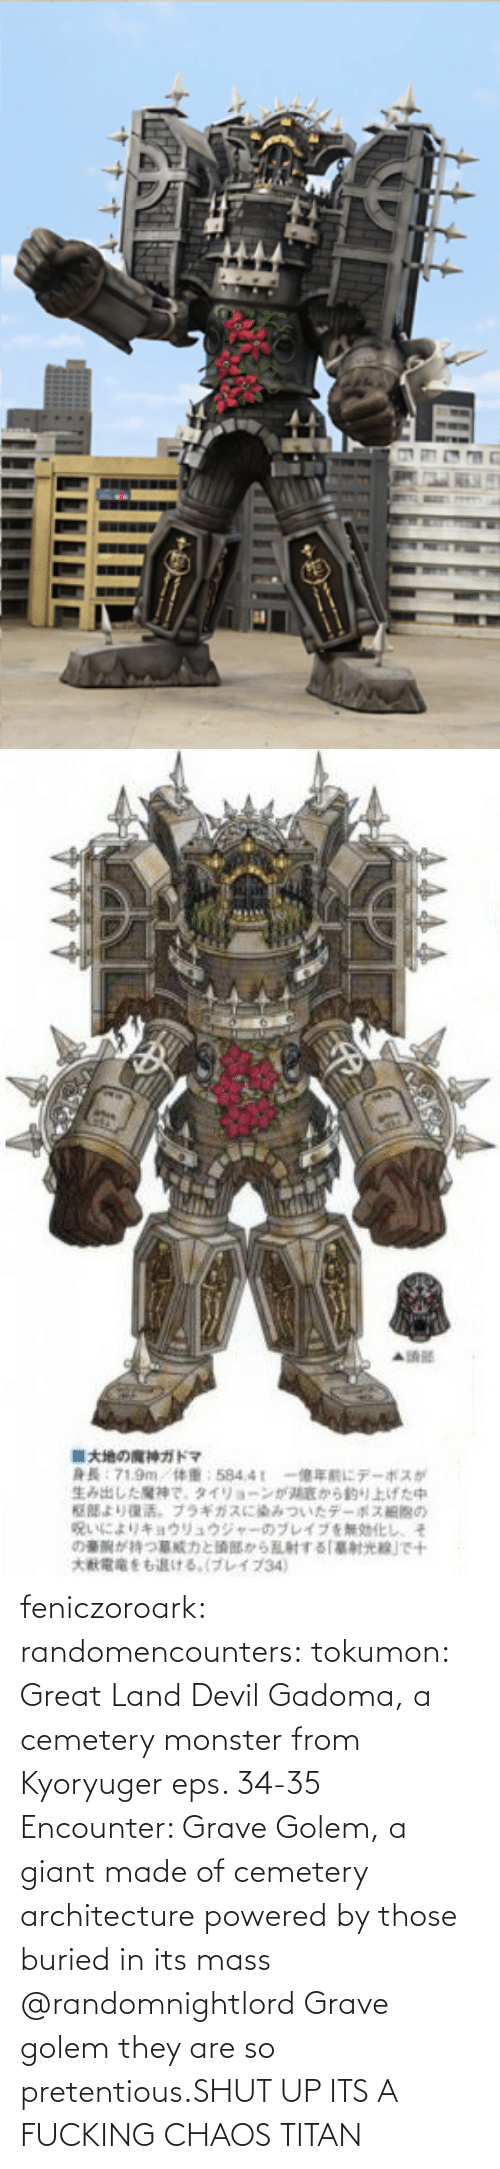 Shut Up: feniczoroark:  randomencounters:  tokumon:  Great Land Devil Gadoma, a cemetery monster from Kyoryuger eps. 34-35  Encounter: Grave Golem, a giant made of cemetery architecture powered by those buried in its mass   @randomnightlord    Grave golem they are so pretentious.SHUT UP ITS A FUCKING CHAOS TITAN